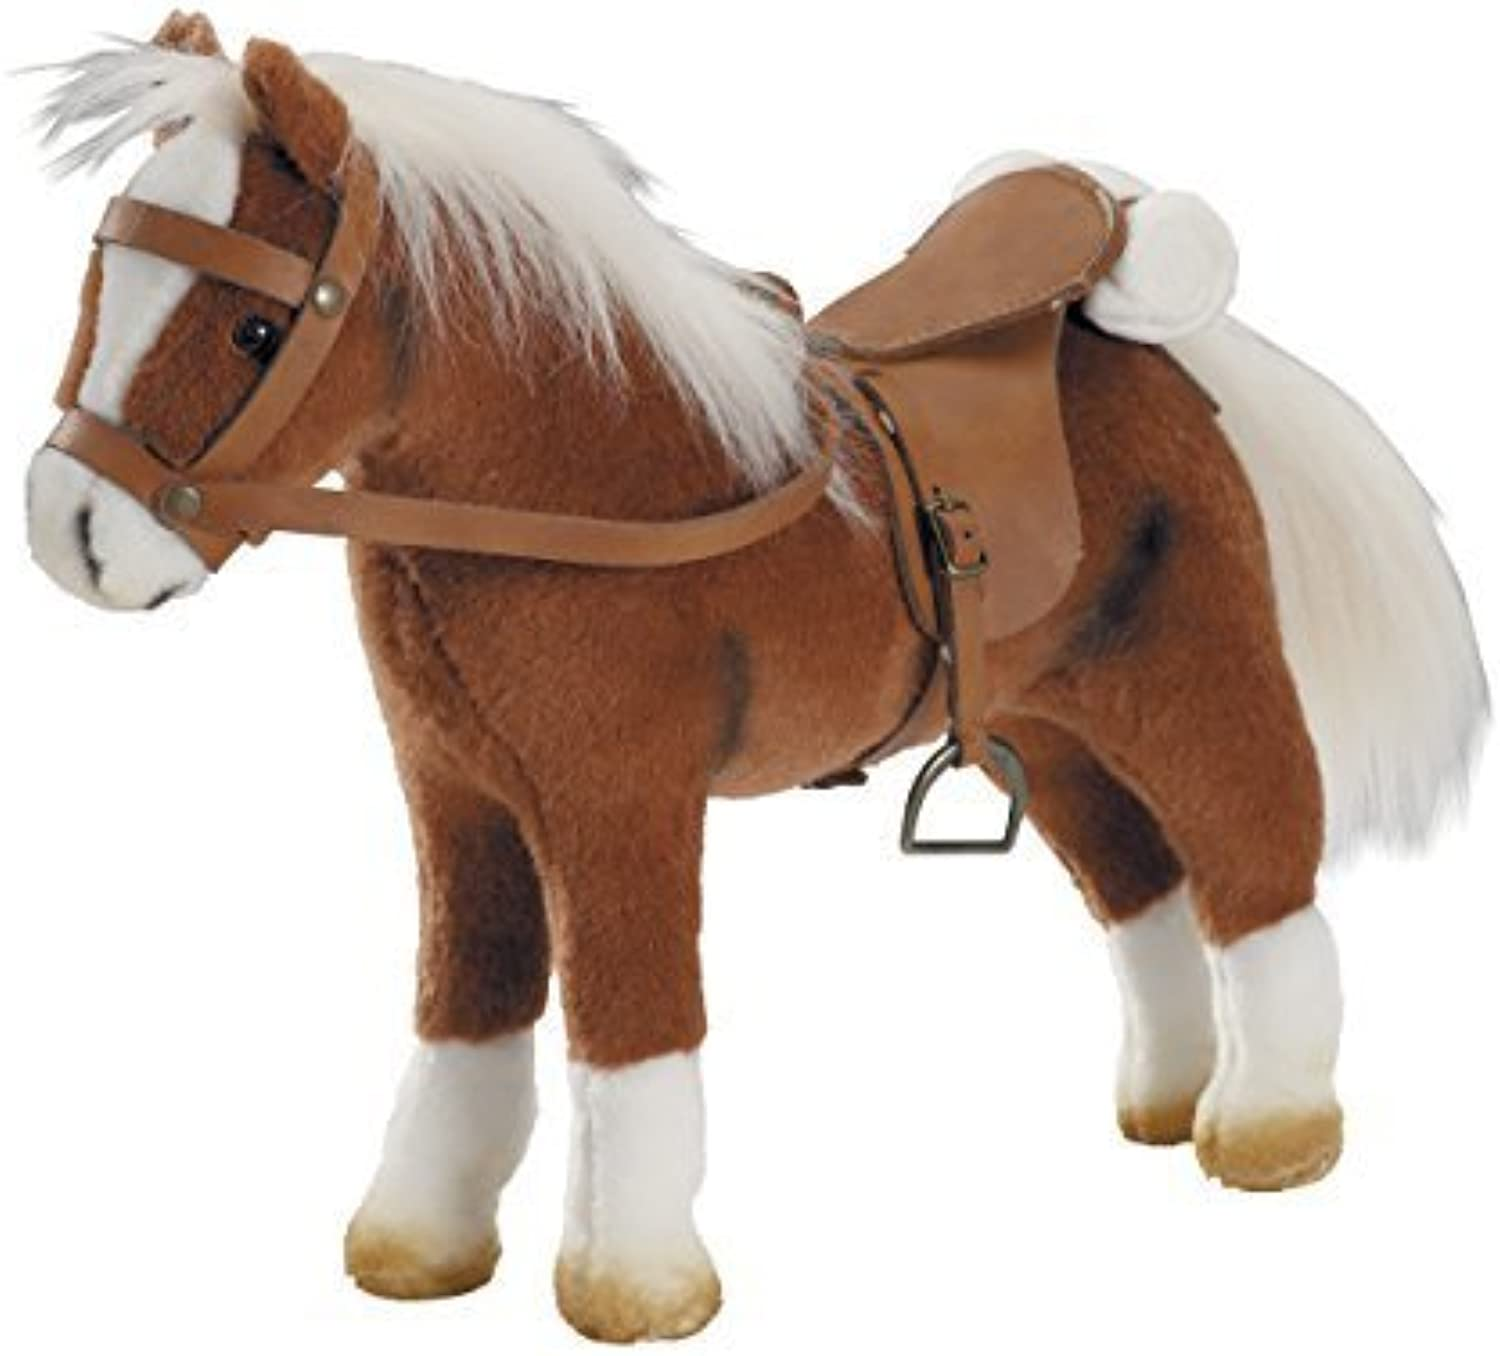 Horse, Plush, with Harness And Saddle, Bendable by Gkz